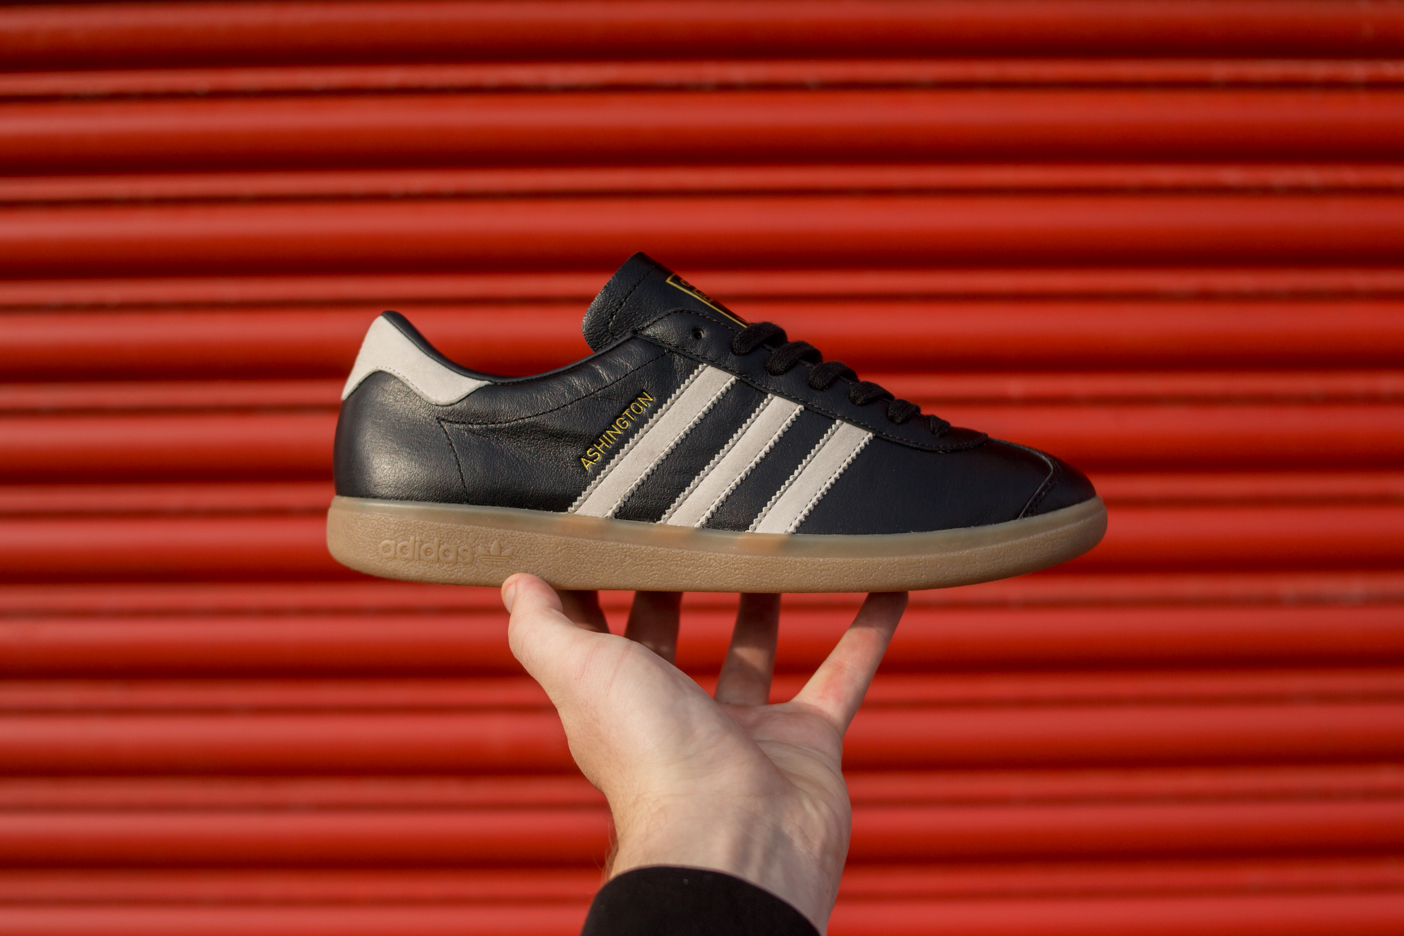 online store bb6fe e9717 For the second collaborative shoe with the Red Devils, adidas Originals and  Manchester United team up once again to create the Ashington, ...